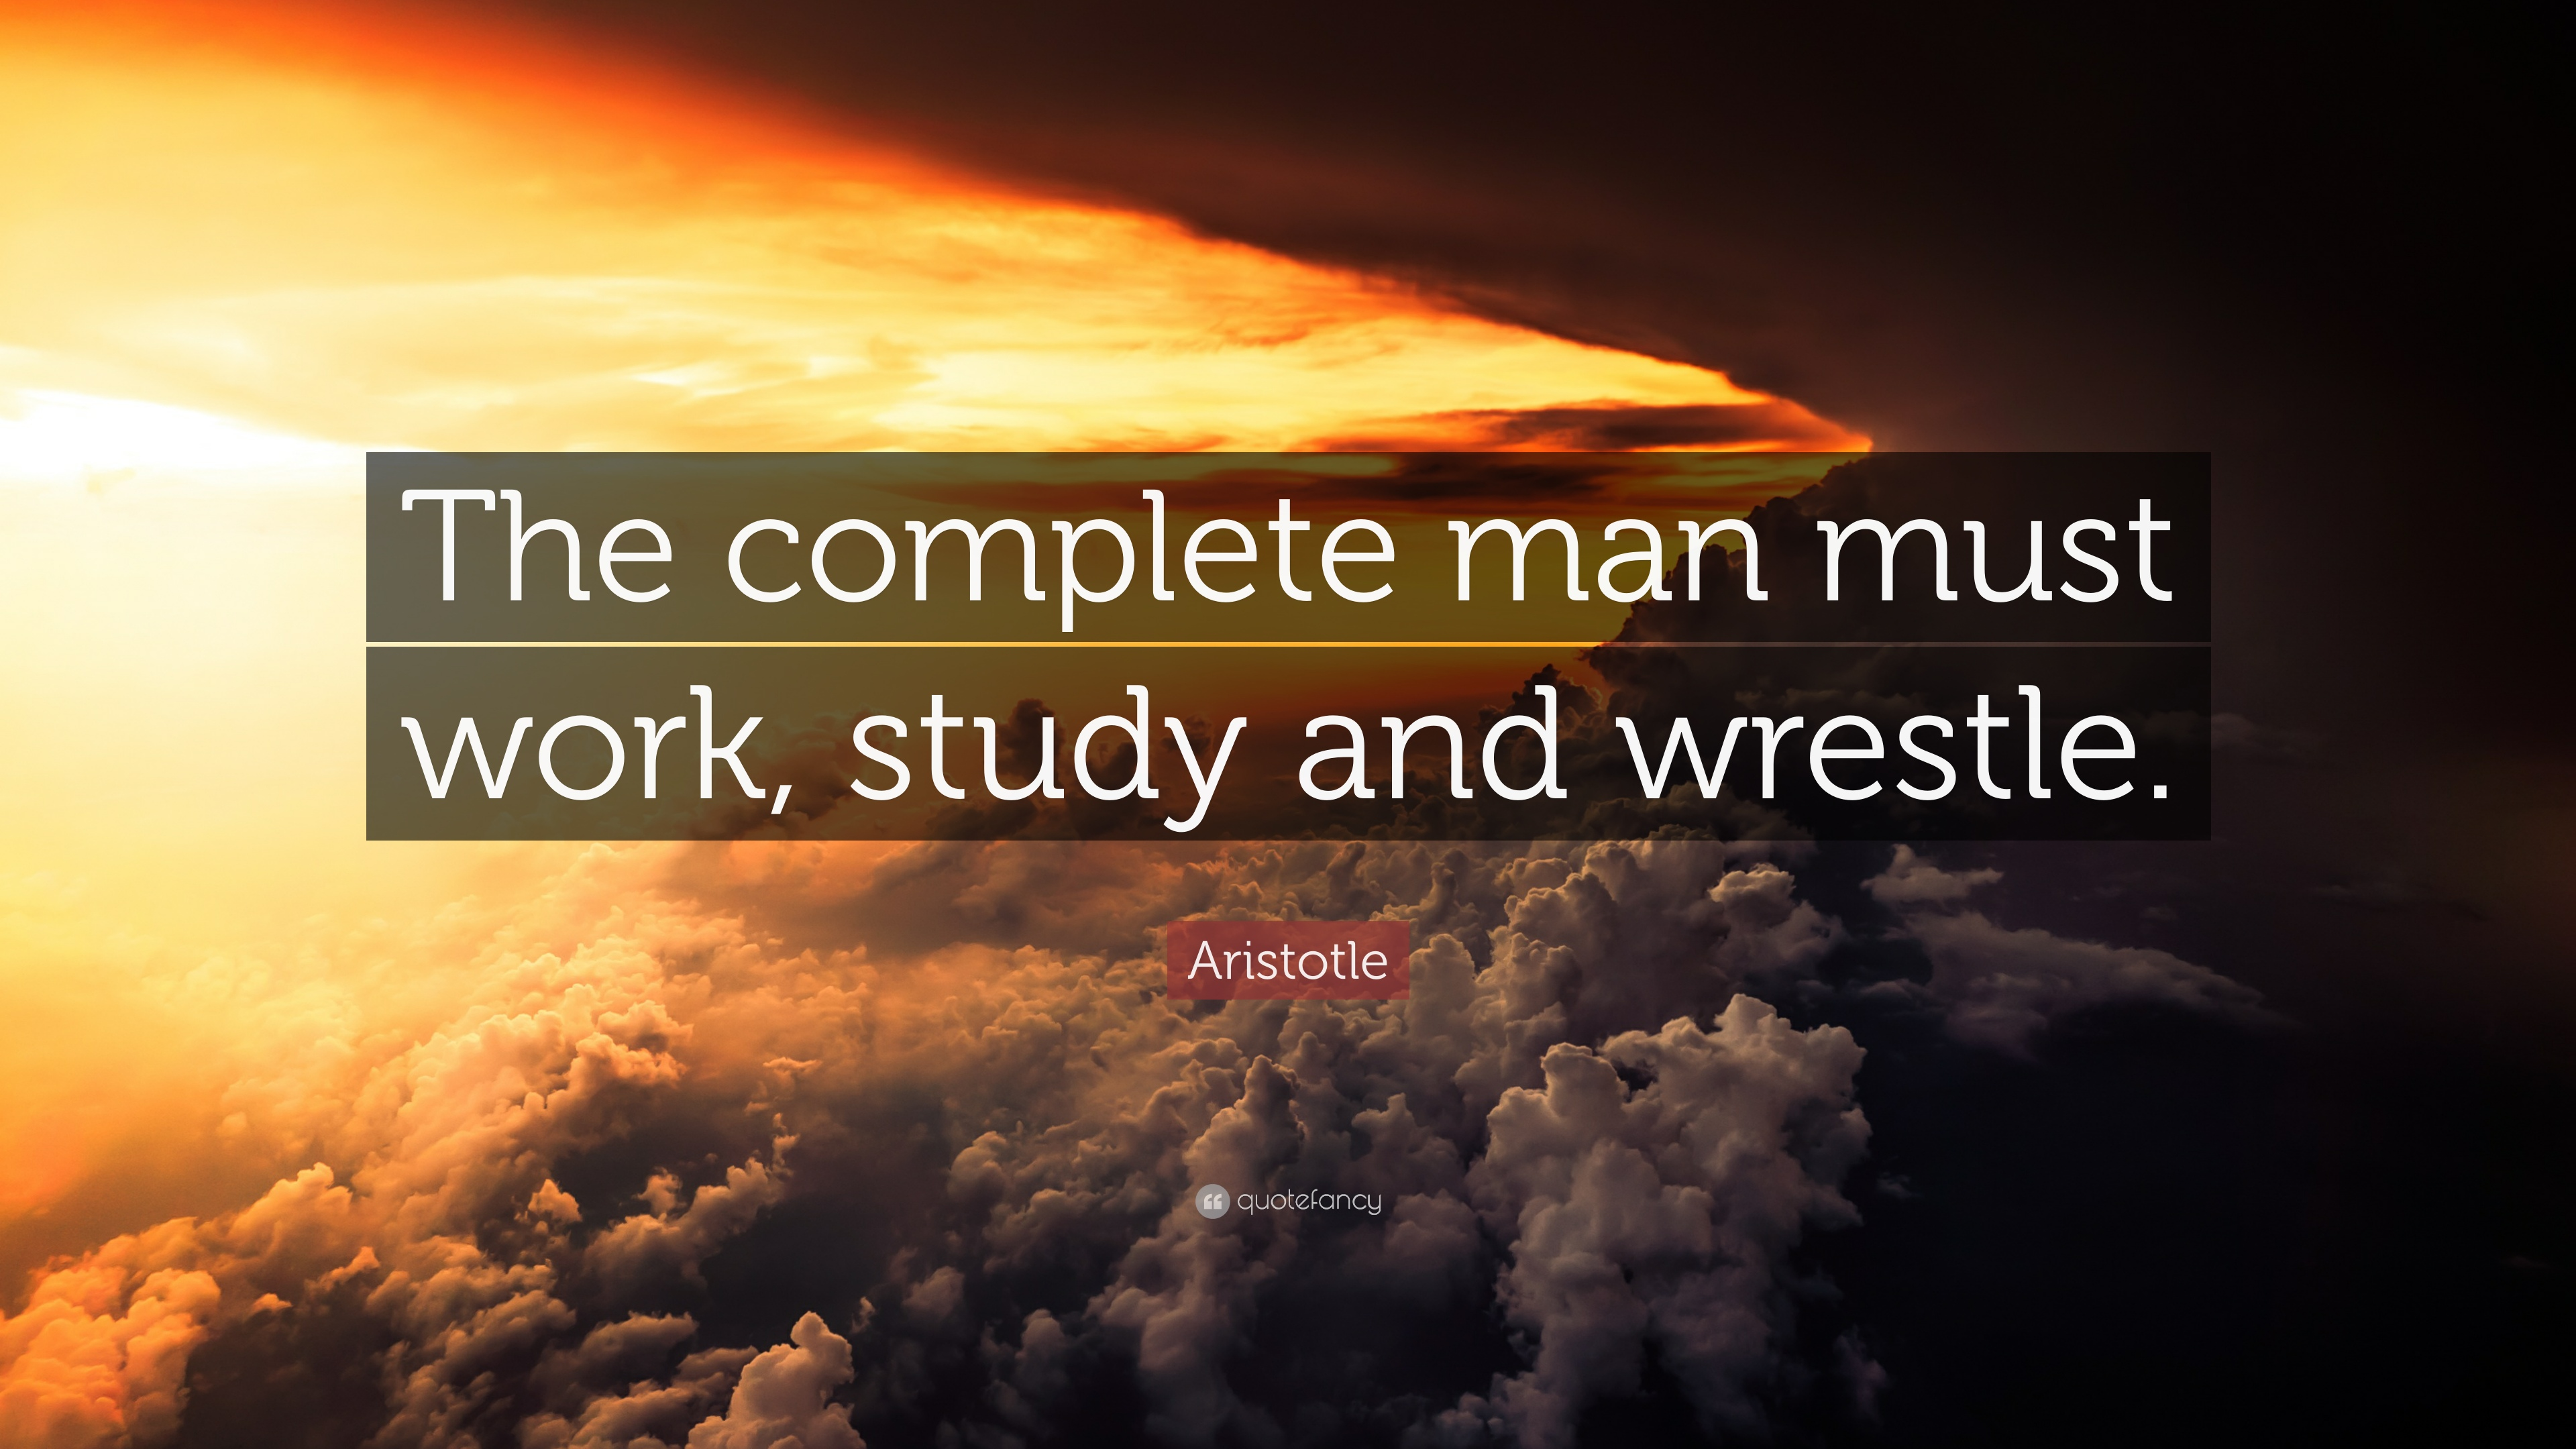 Aristotle Quotes And Sayings: Aristotle Quotes (100 Wallpapers)